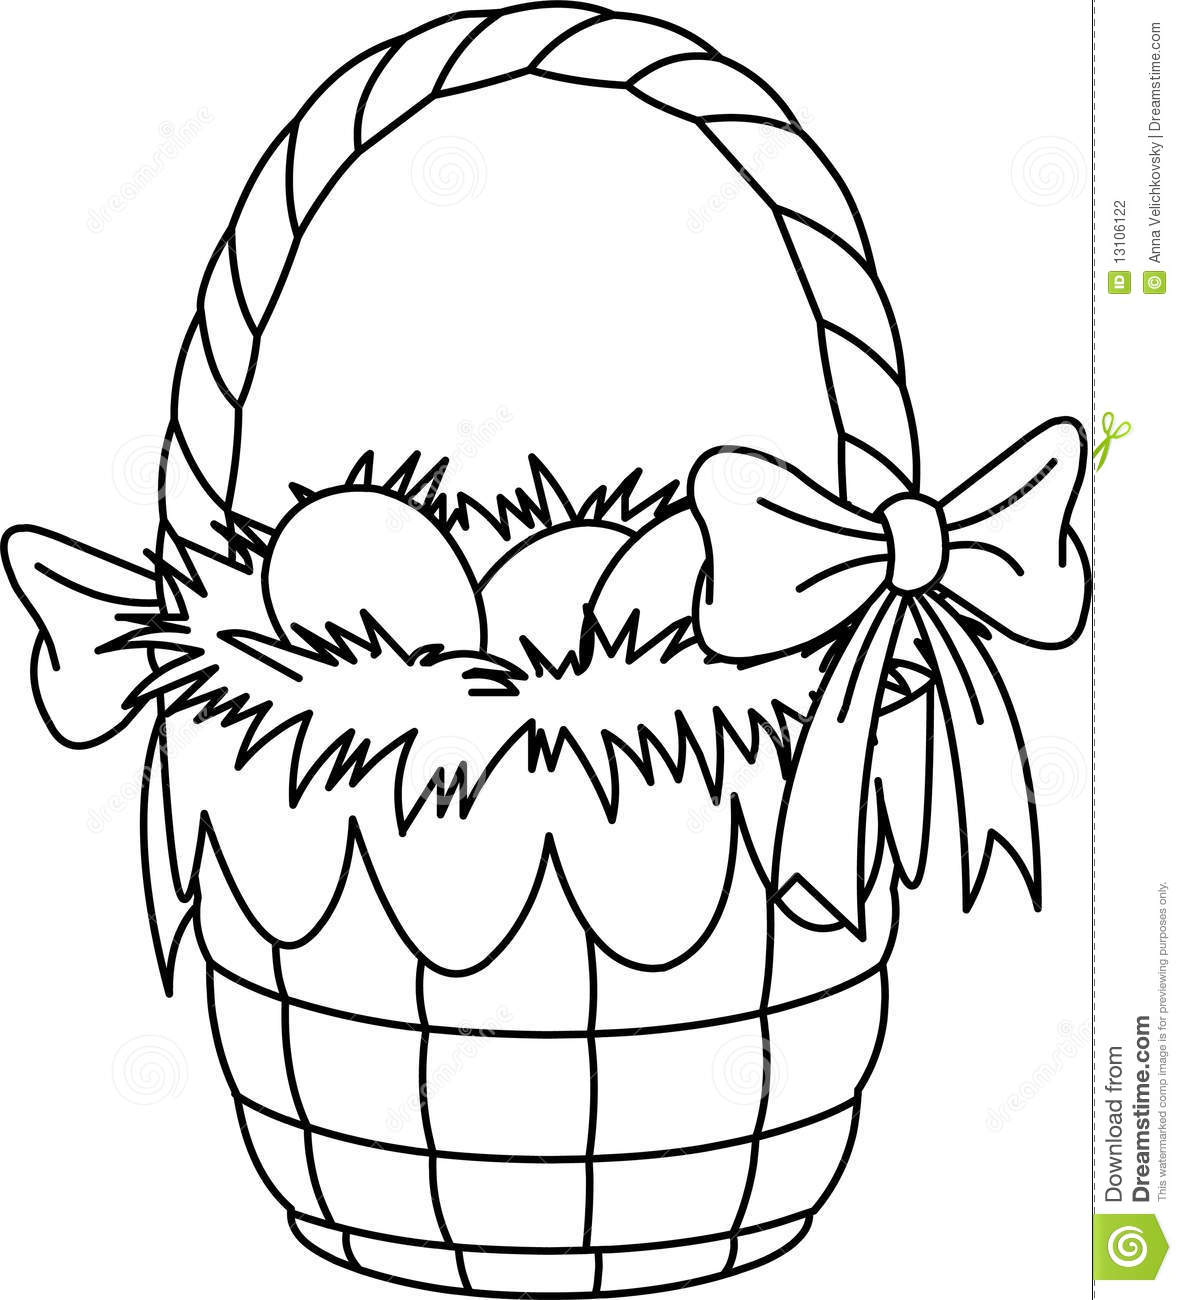 Easter Basket Coloring Page Stock Illustration - Illustration of ...